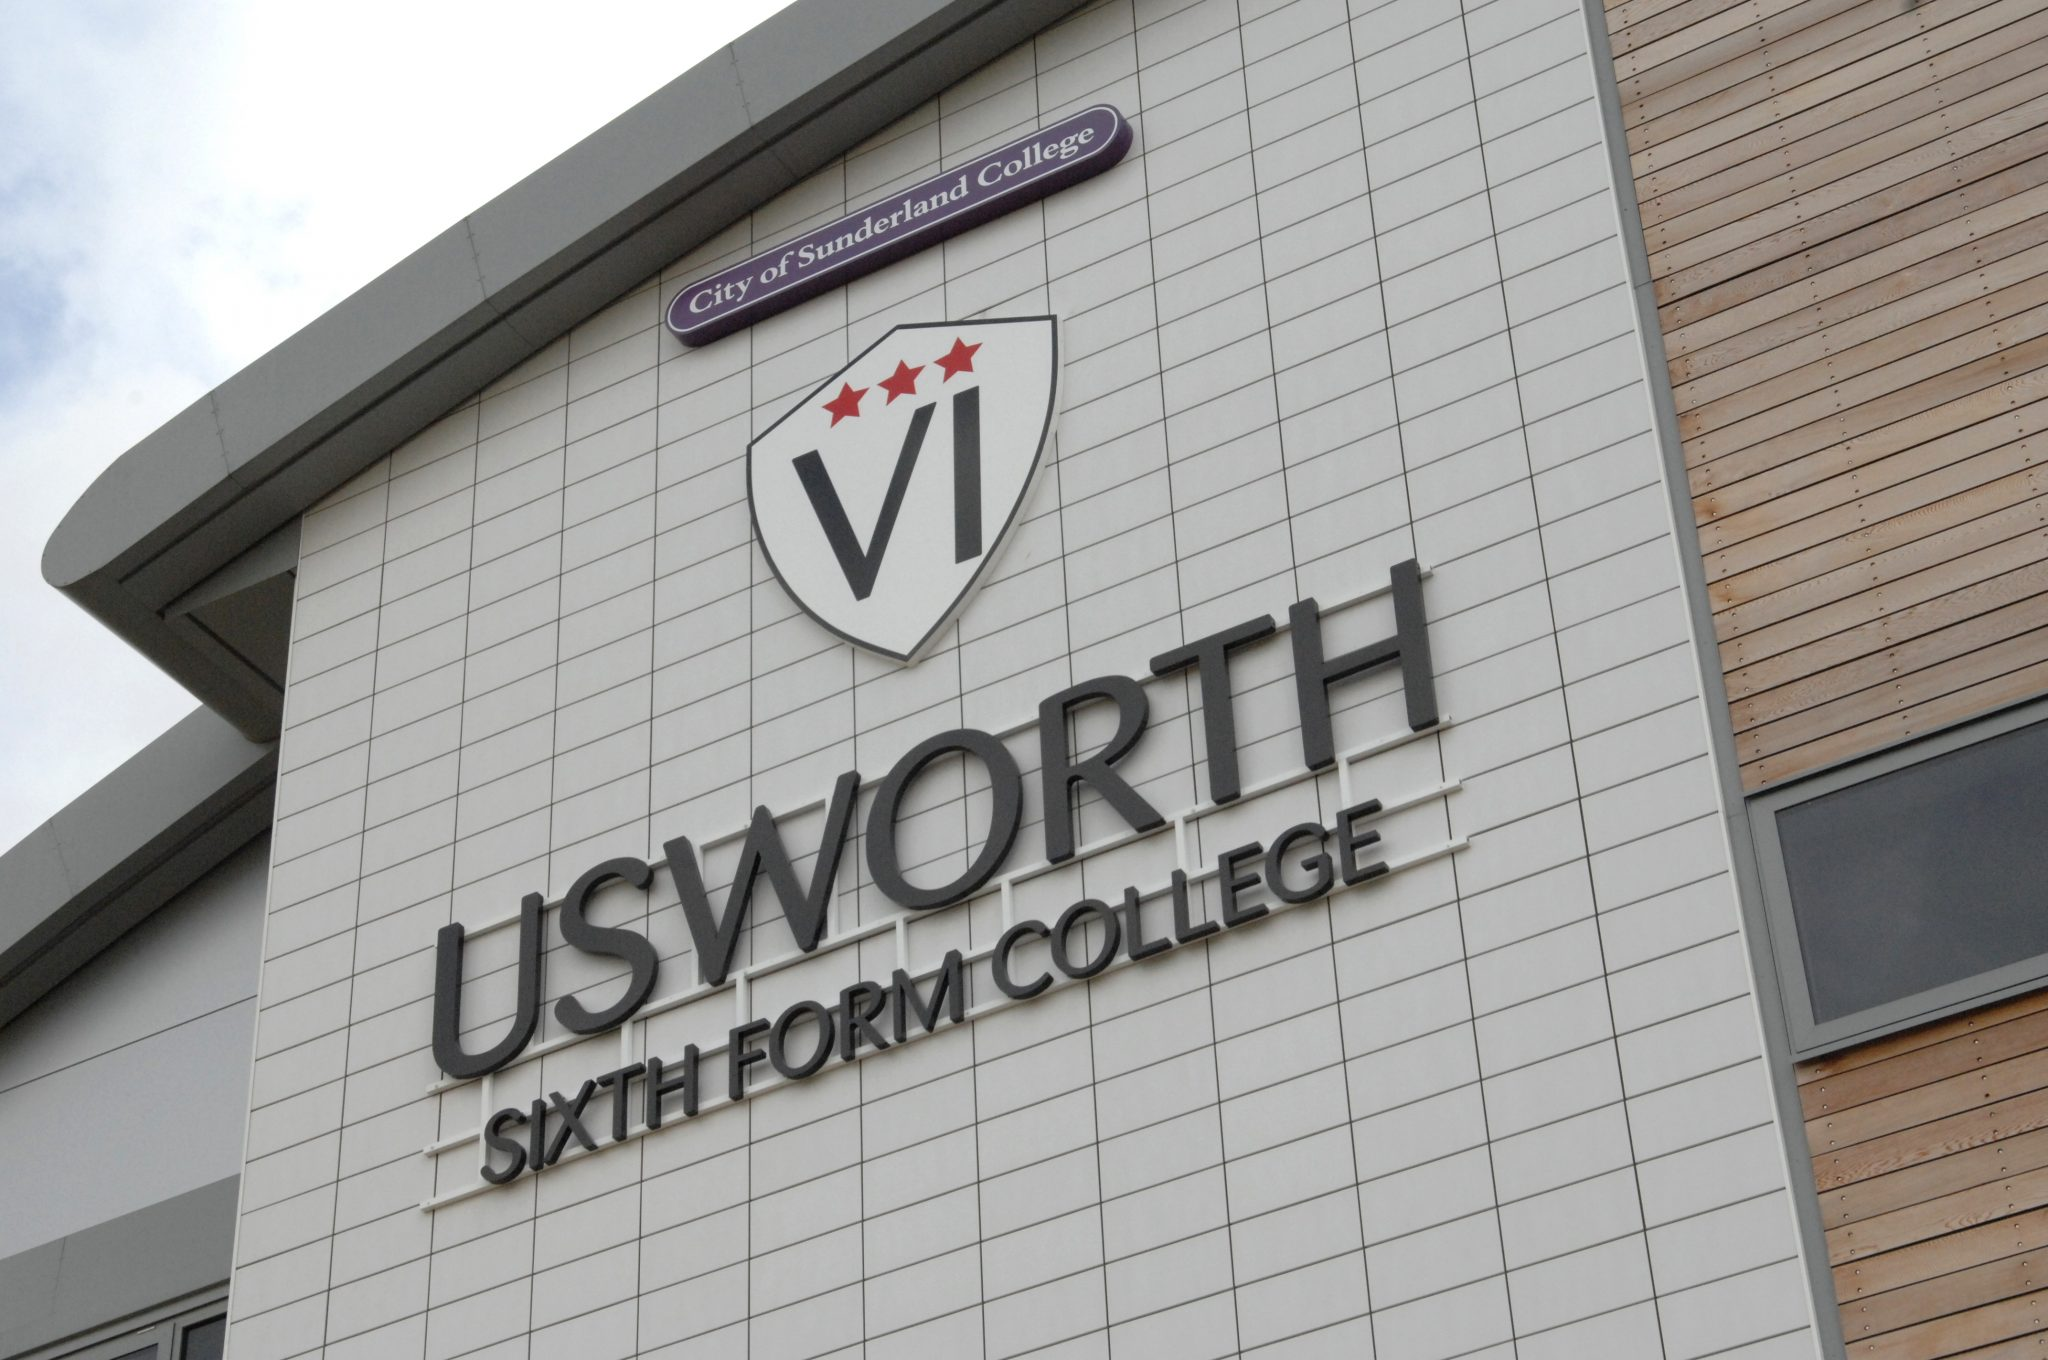 Usworth College Tonality